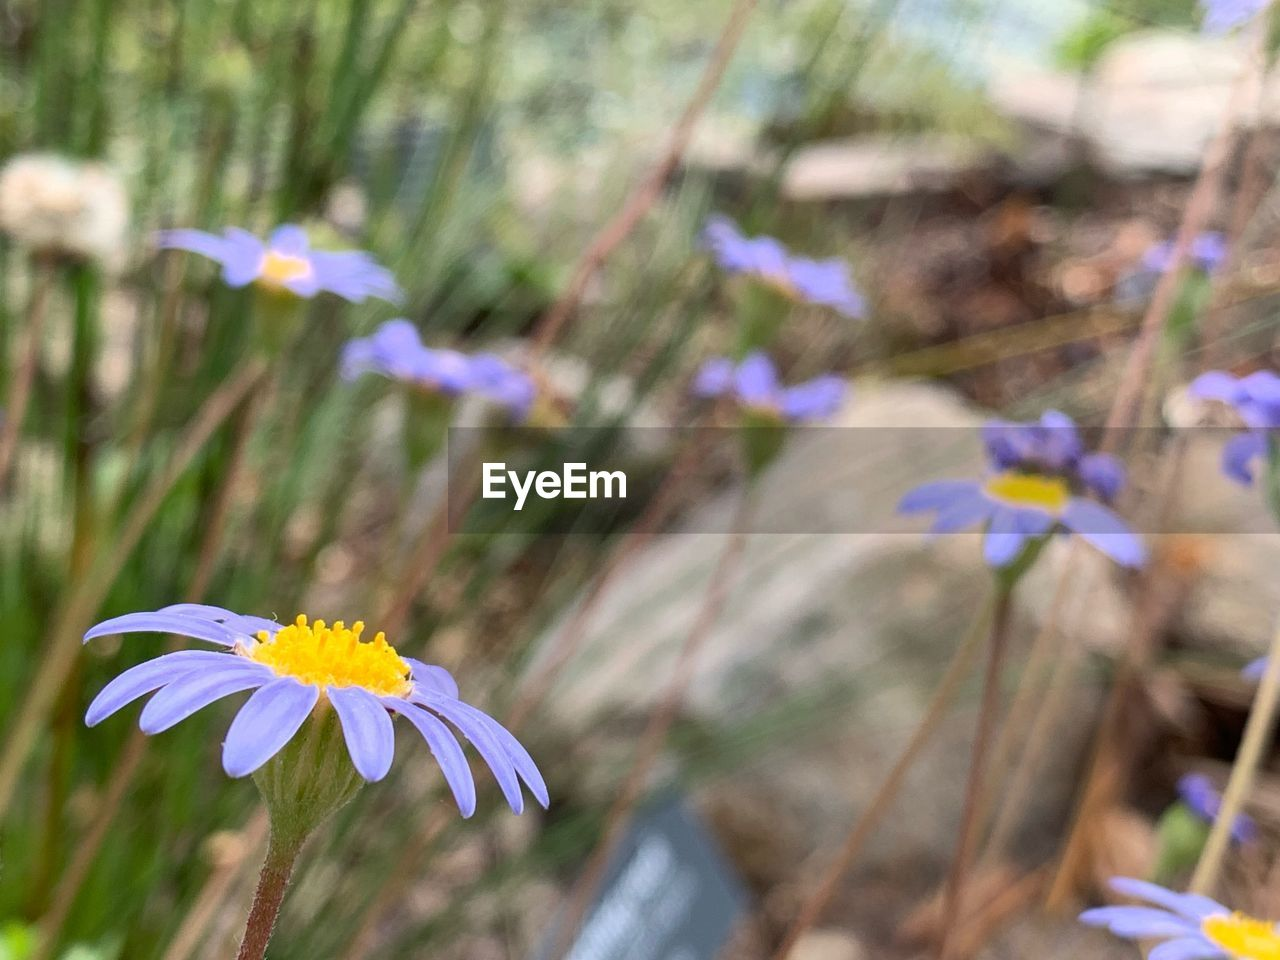 flowering plant, flower, freshness, plant, fragility, vulnerability, beauty in nature, growth, petal, close-up, focus on foreground, flower head, inflorescence, nature, day, no people, purple, botany, field, land, outdoors, pollen